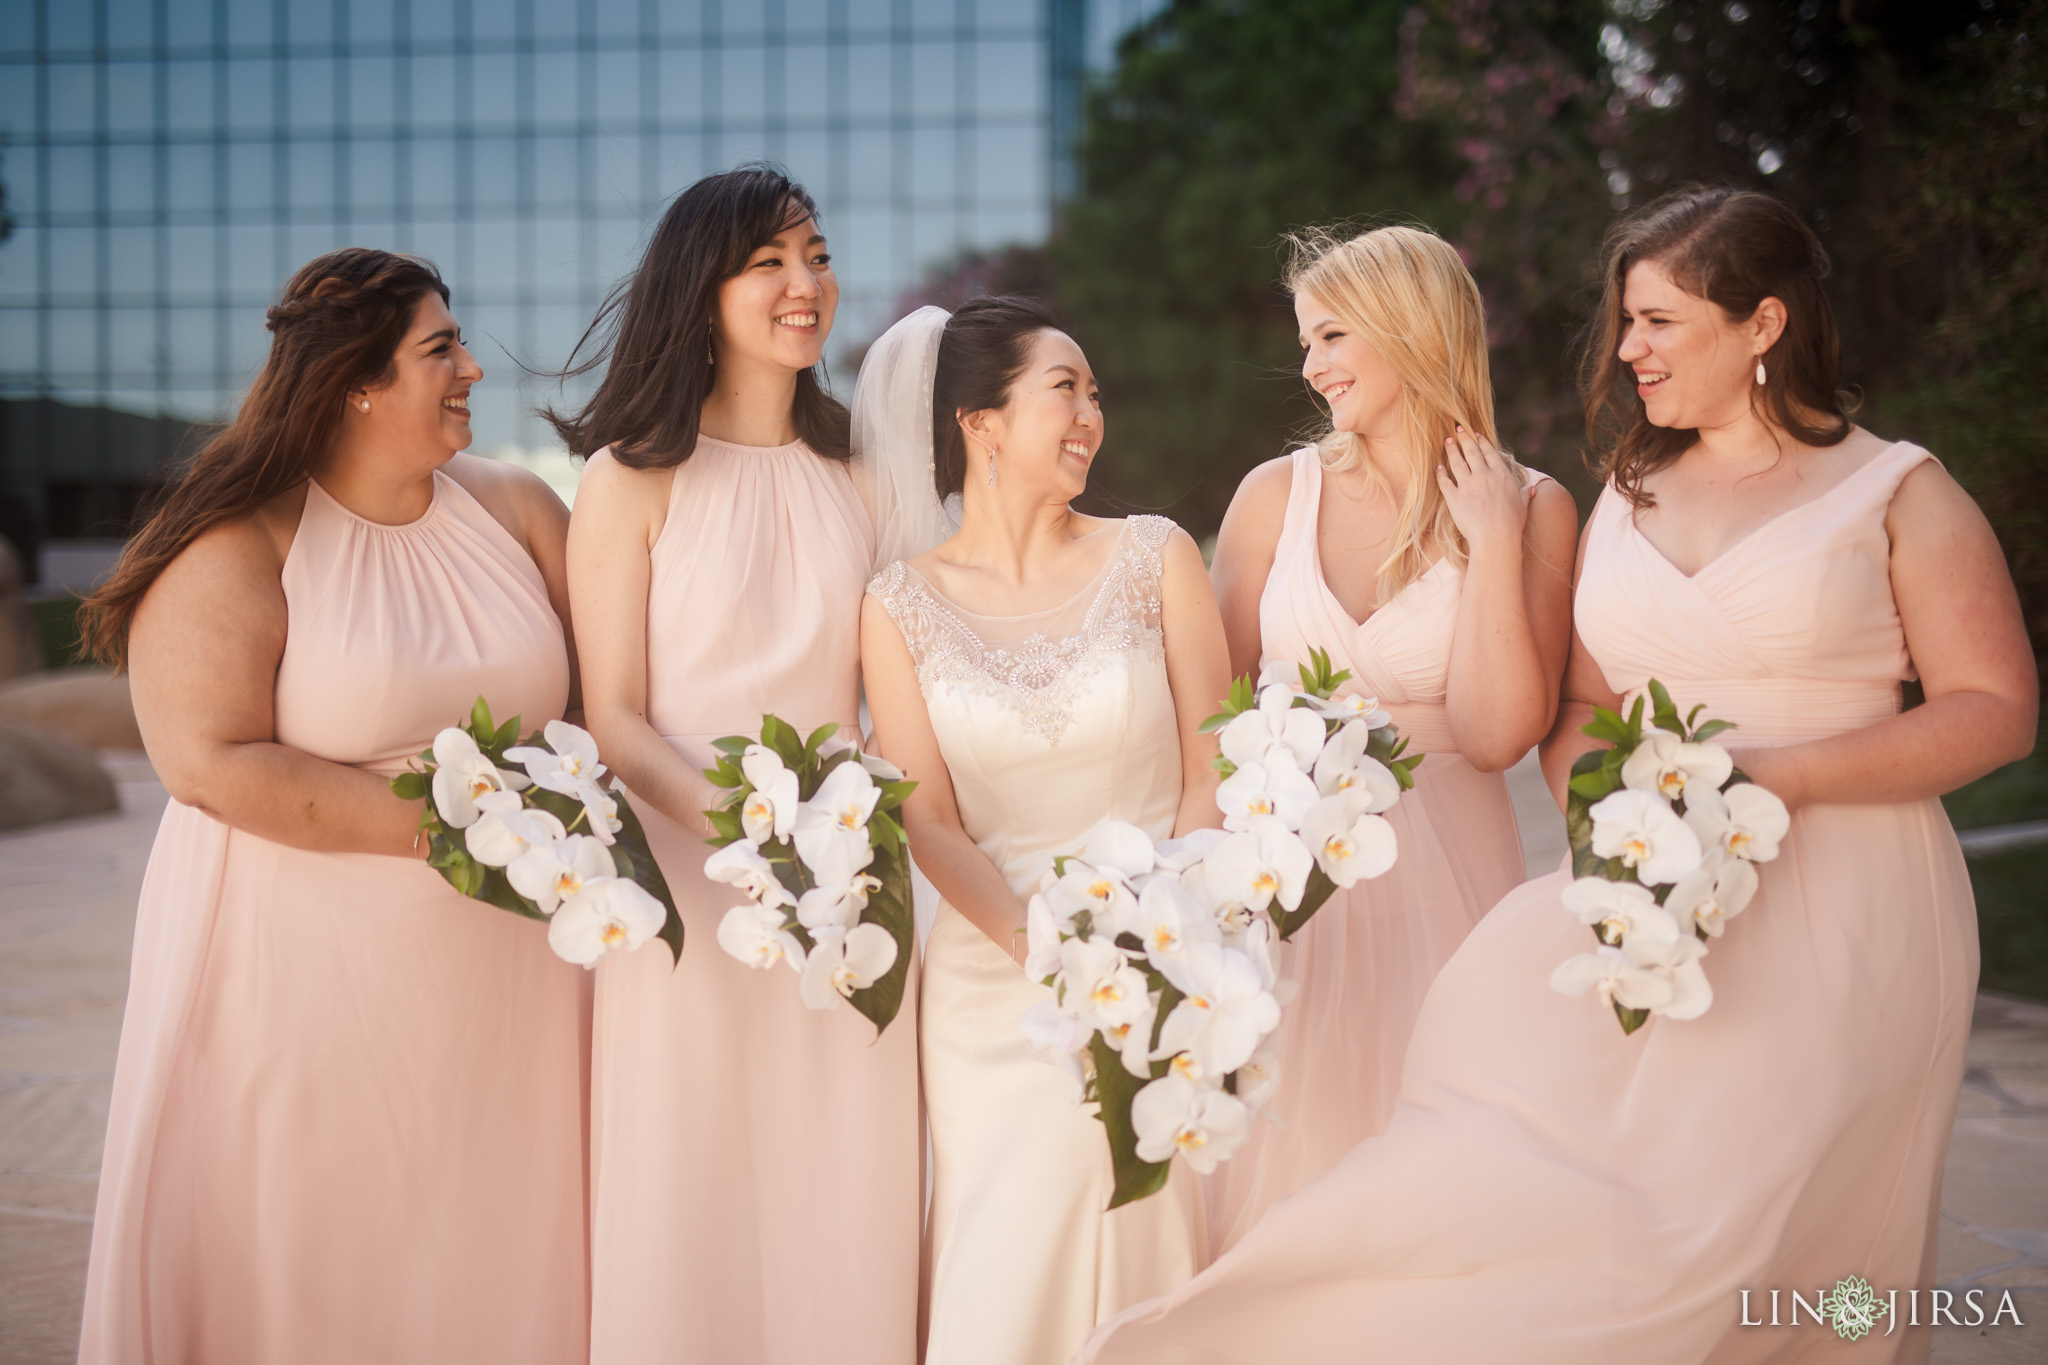 16 segerstrom center for the arts costa mesa wedding photography